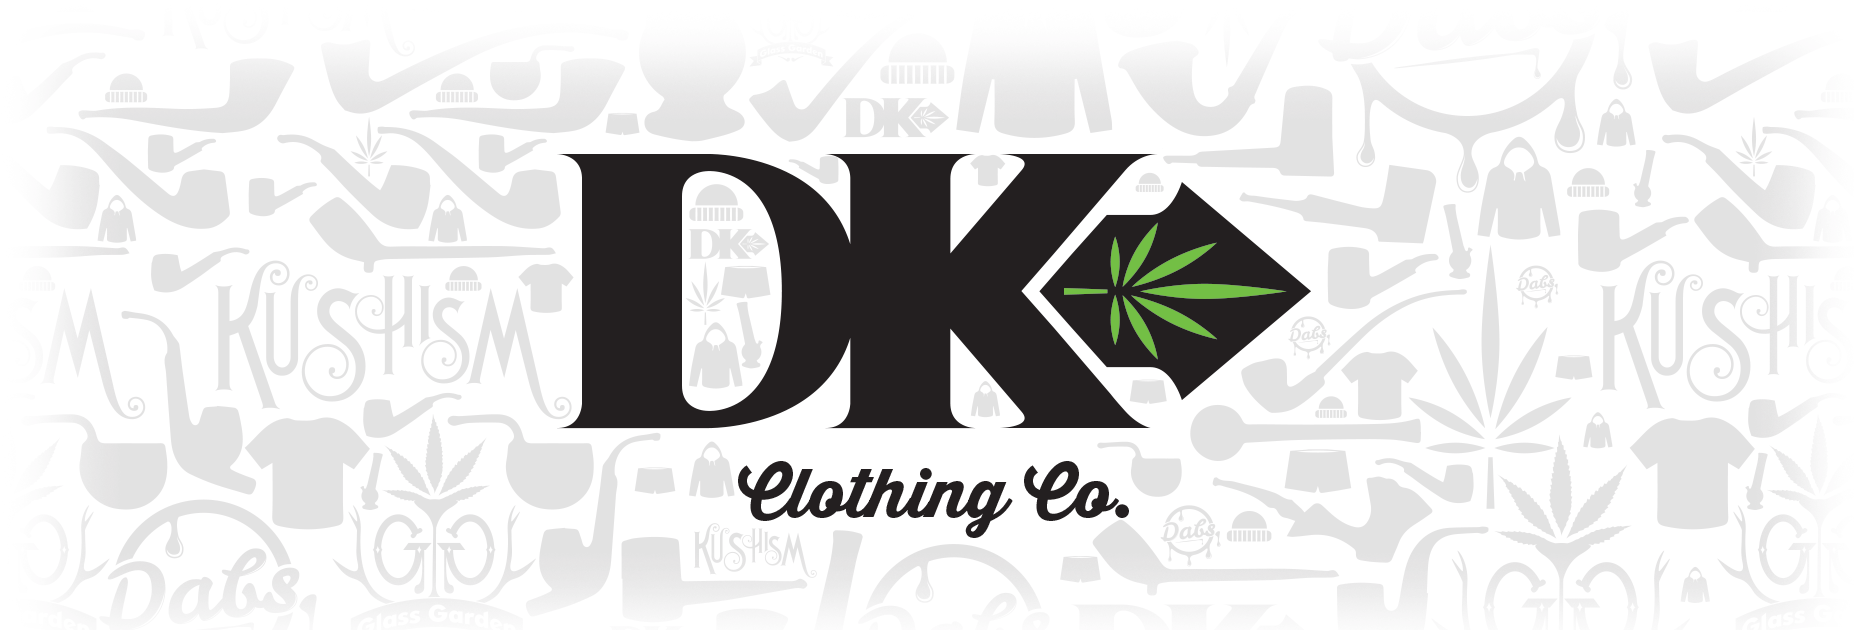 DK Clothing Co.